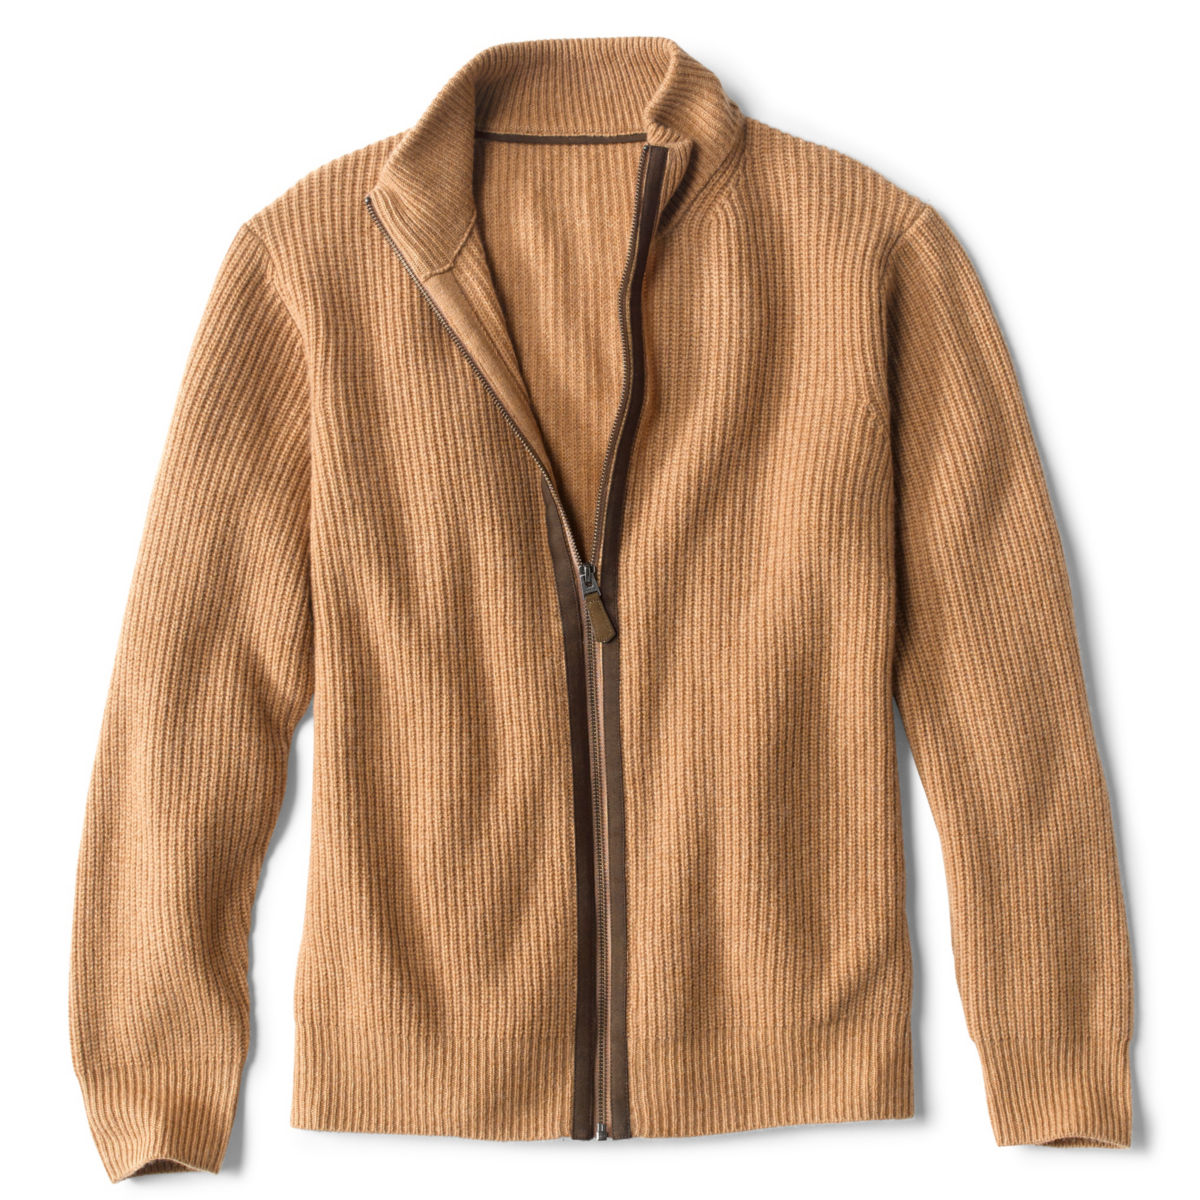 Maidstone Cashmere Full-Zip Sweater - CAMELimage number 0